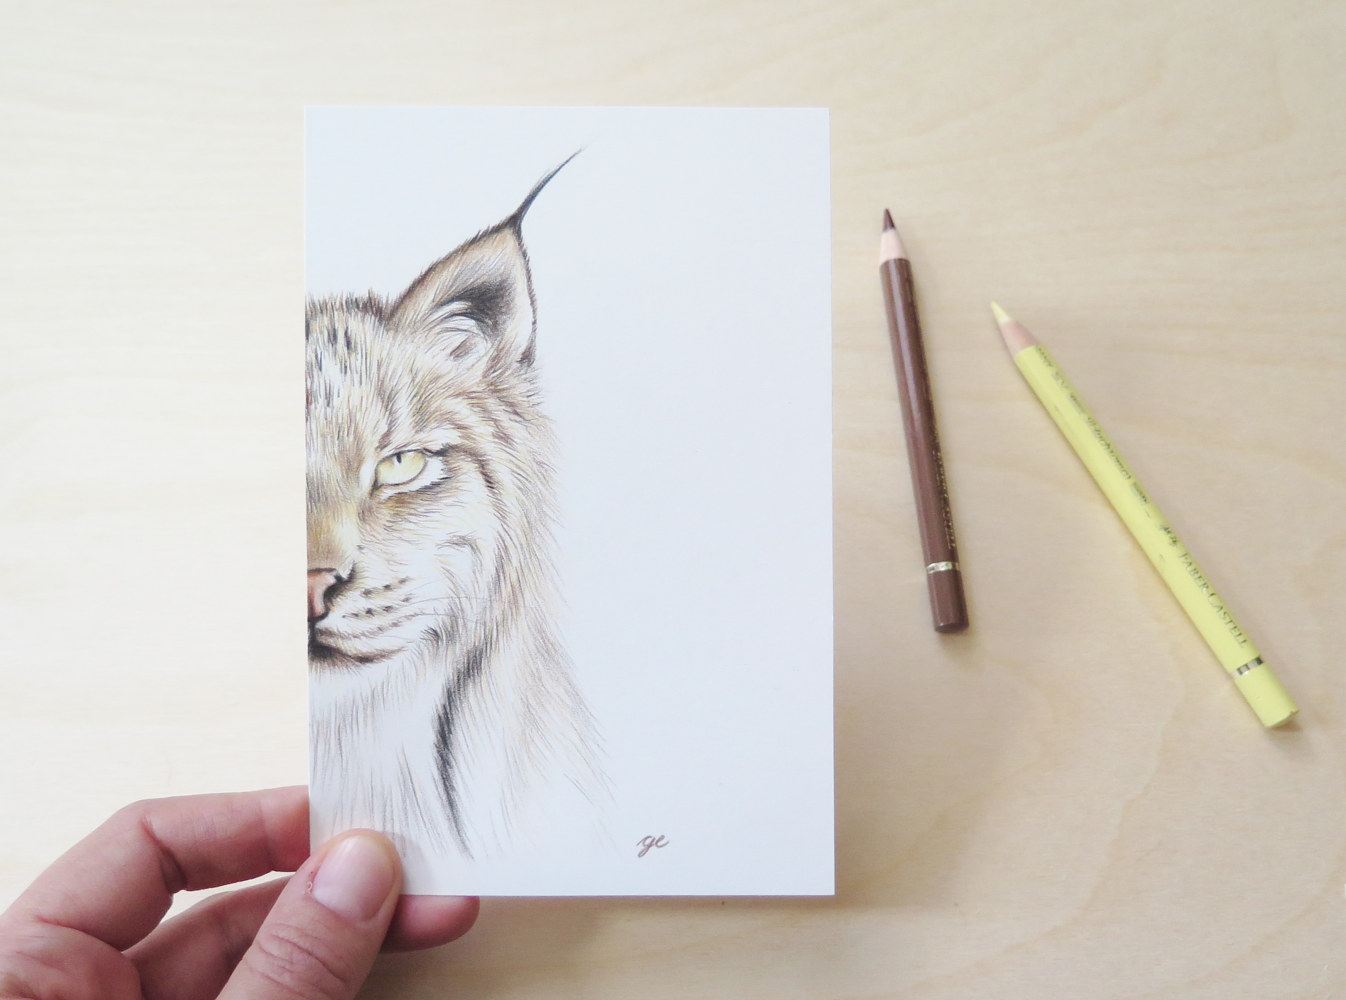 Drawing Dessin original 4x6 - Lynx by Genevieve Desy